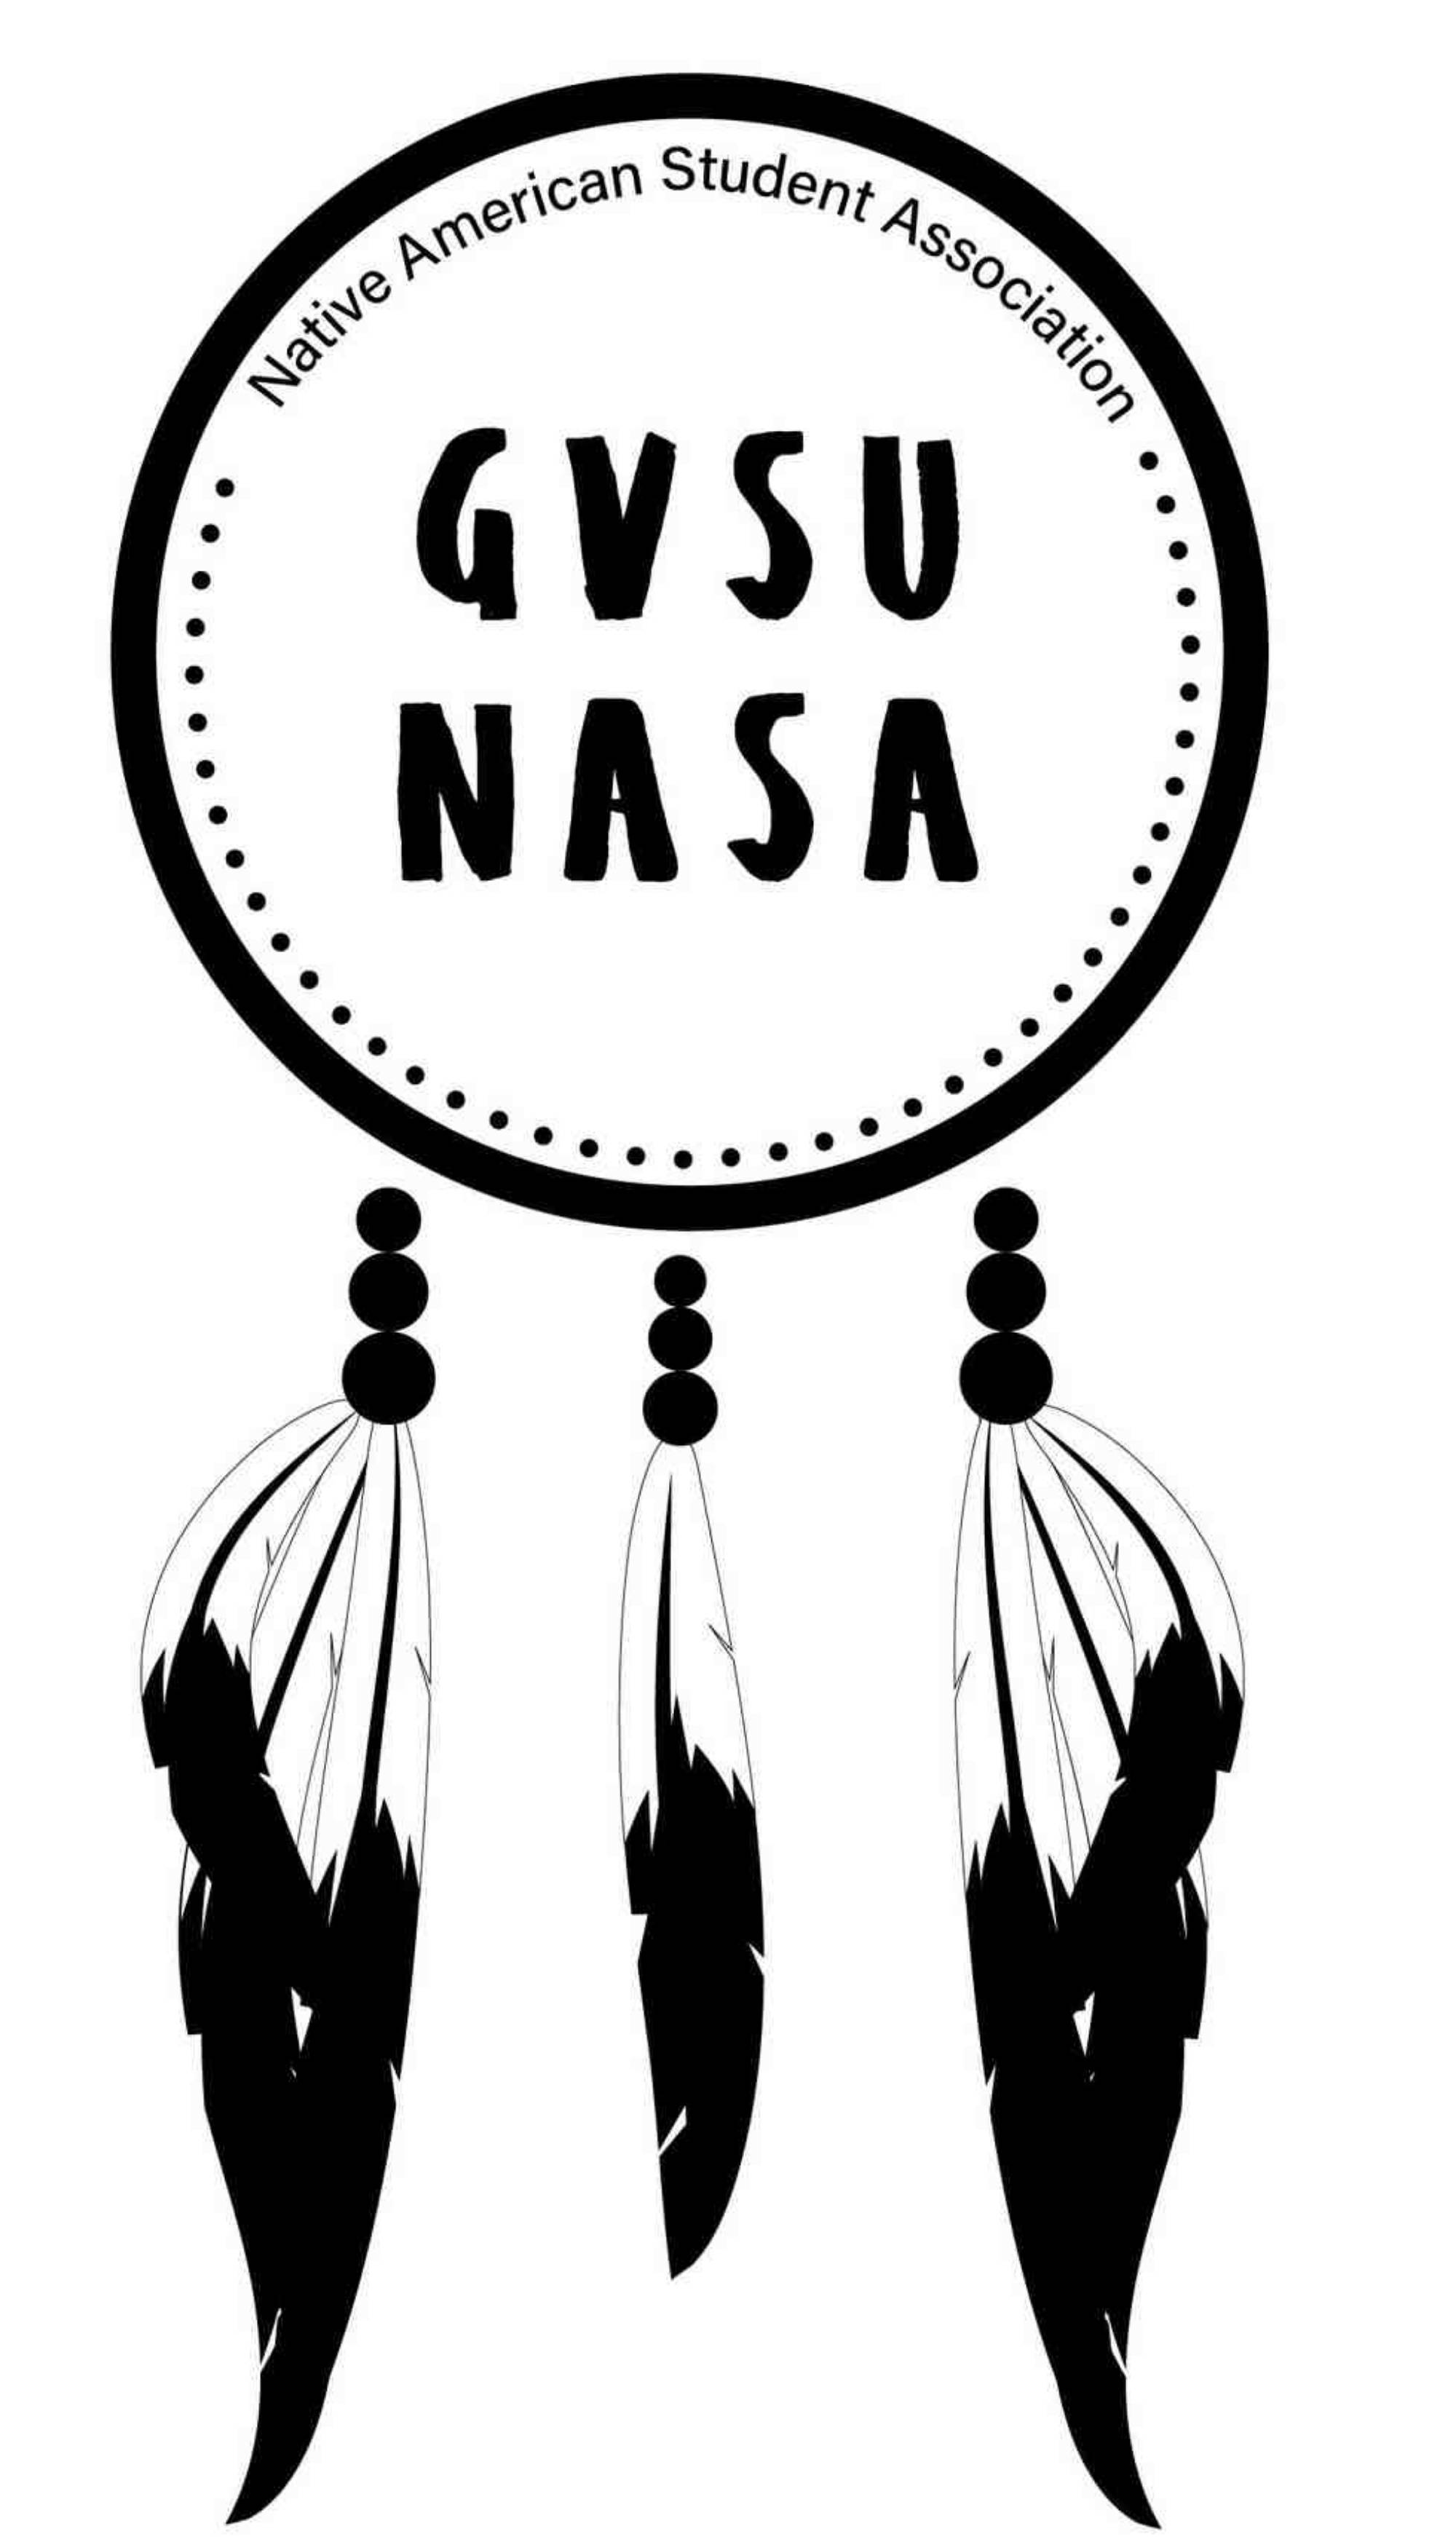 Native American Student Association